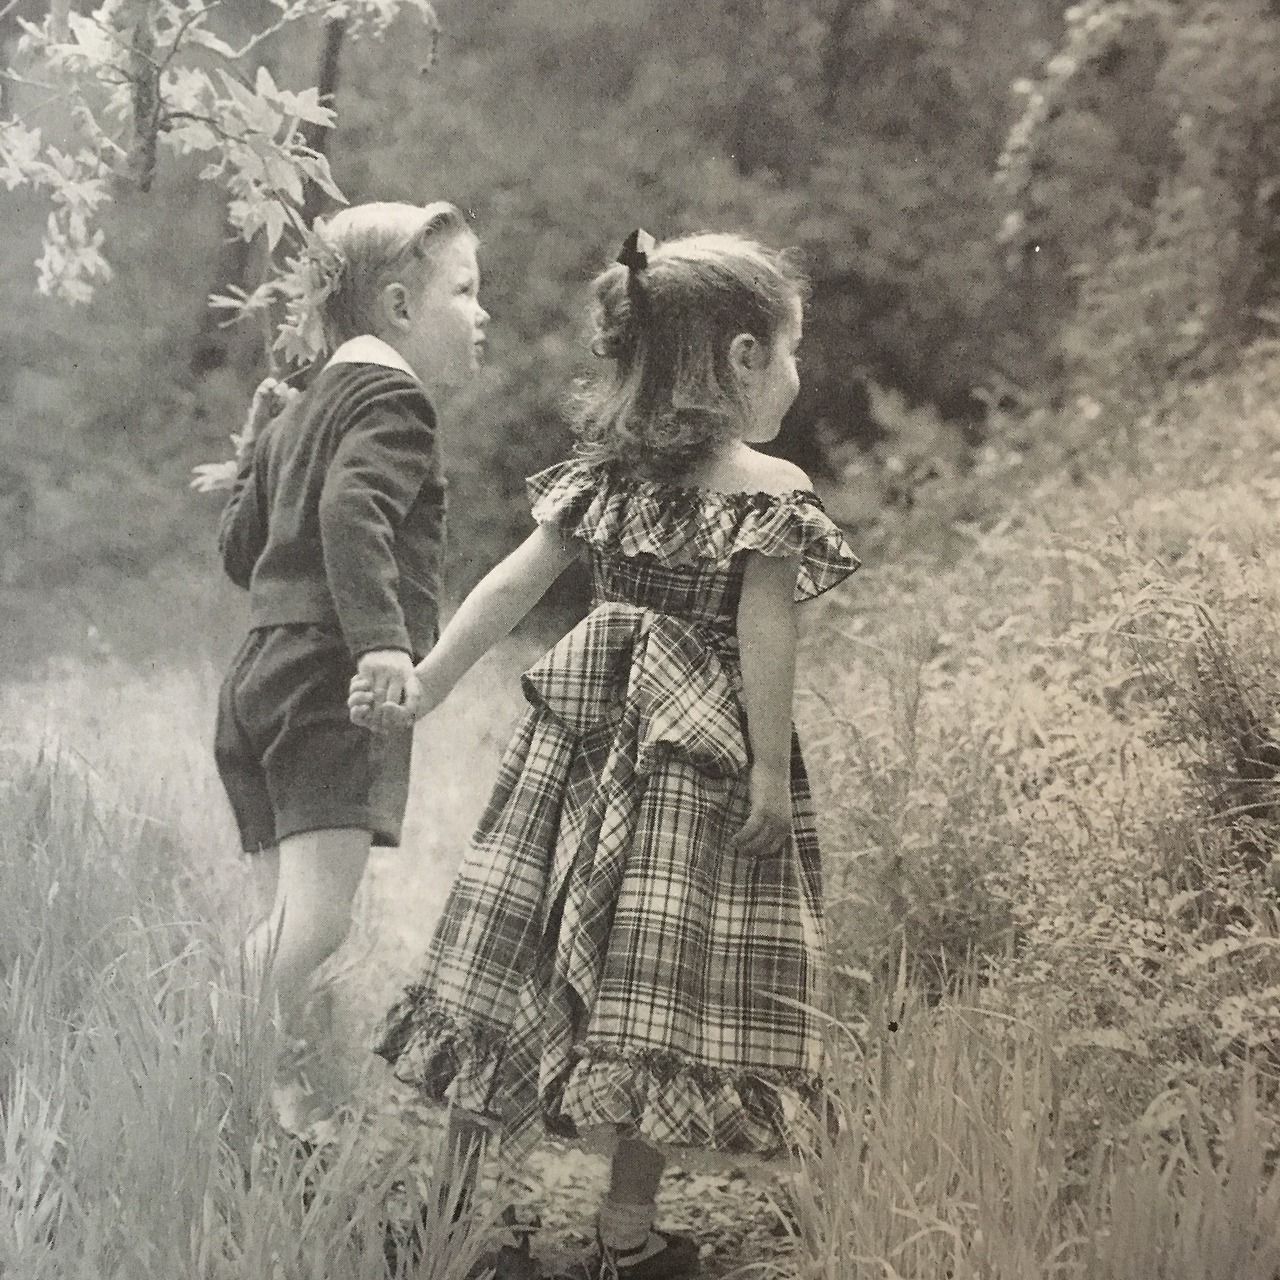 From Mademoiselle's annual Mothers and Babies issue. This image is from a children's fashion editorial. July 1947.